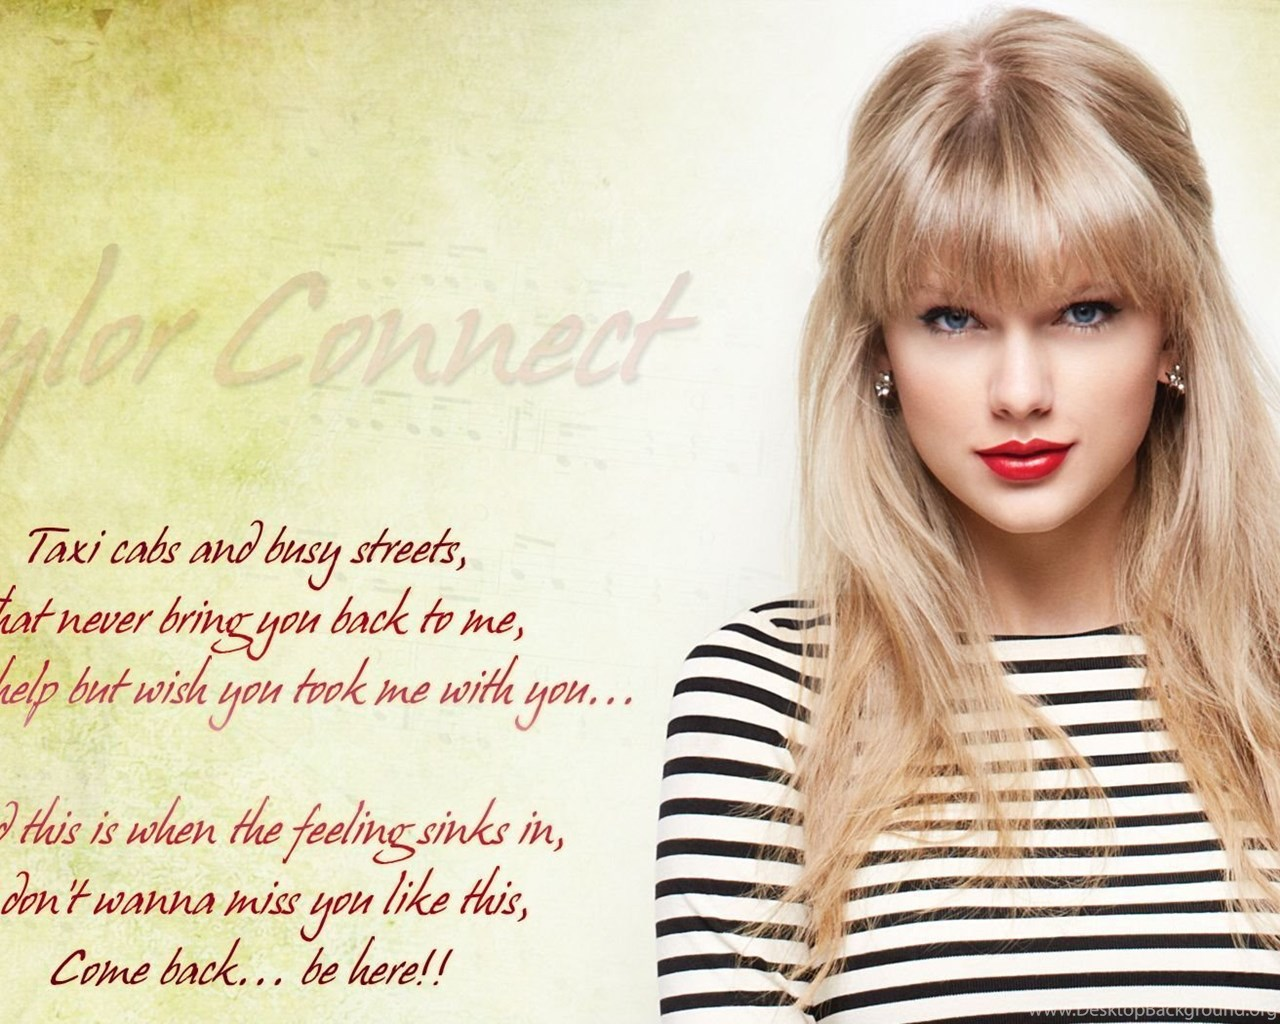 My Red Wallpapers Of Taylor Updated 03 30 13 Taylor Swift Desktop Background